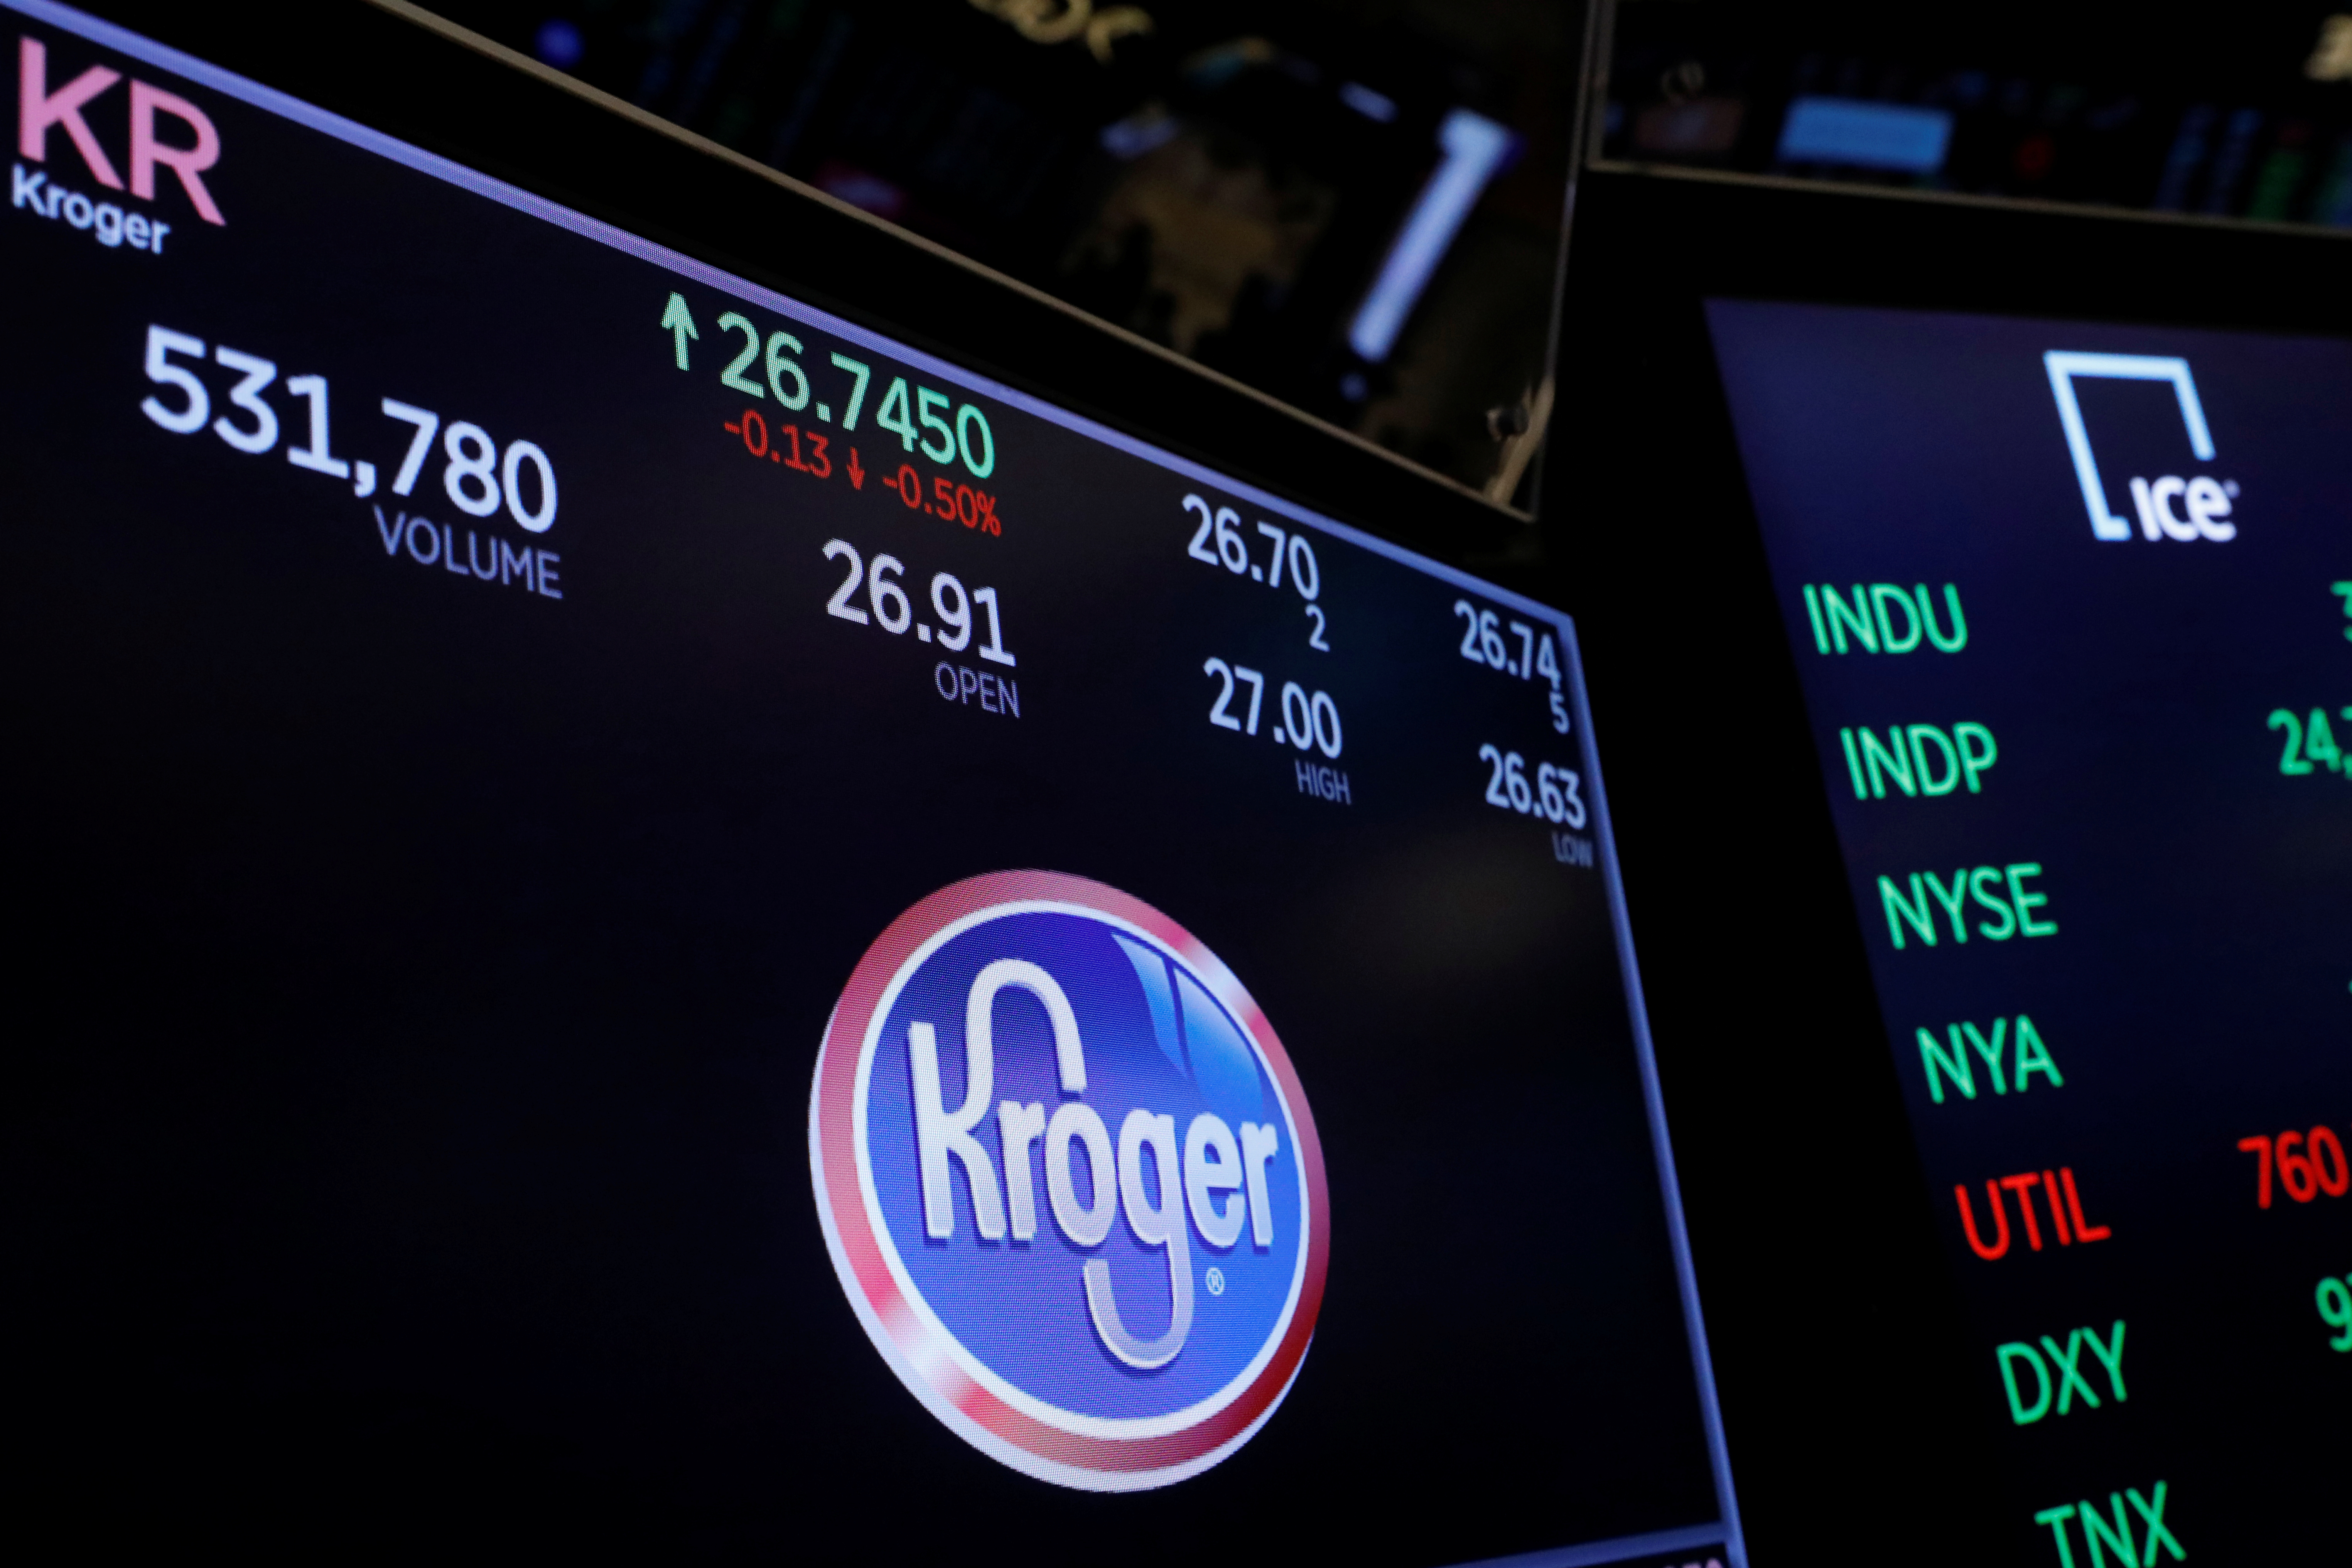 A logo of Kroger is displayed on a monitor above the floor of the New York Stock Exchange shortly after the opening bell in New York. REUTERS/Lucas Jackson